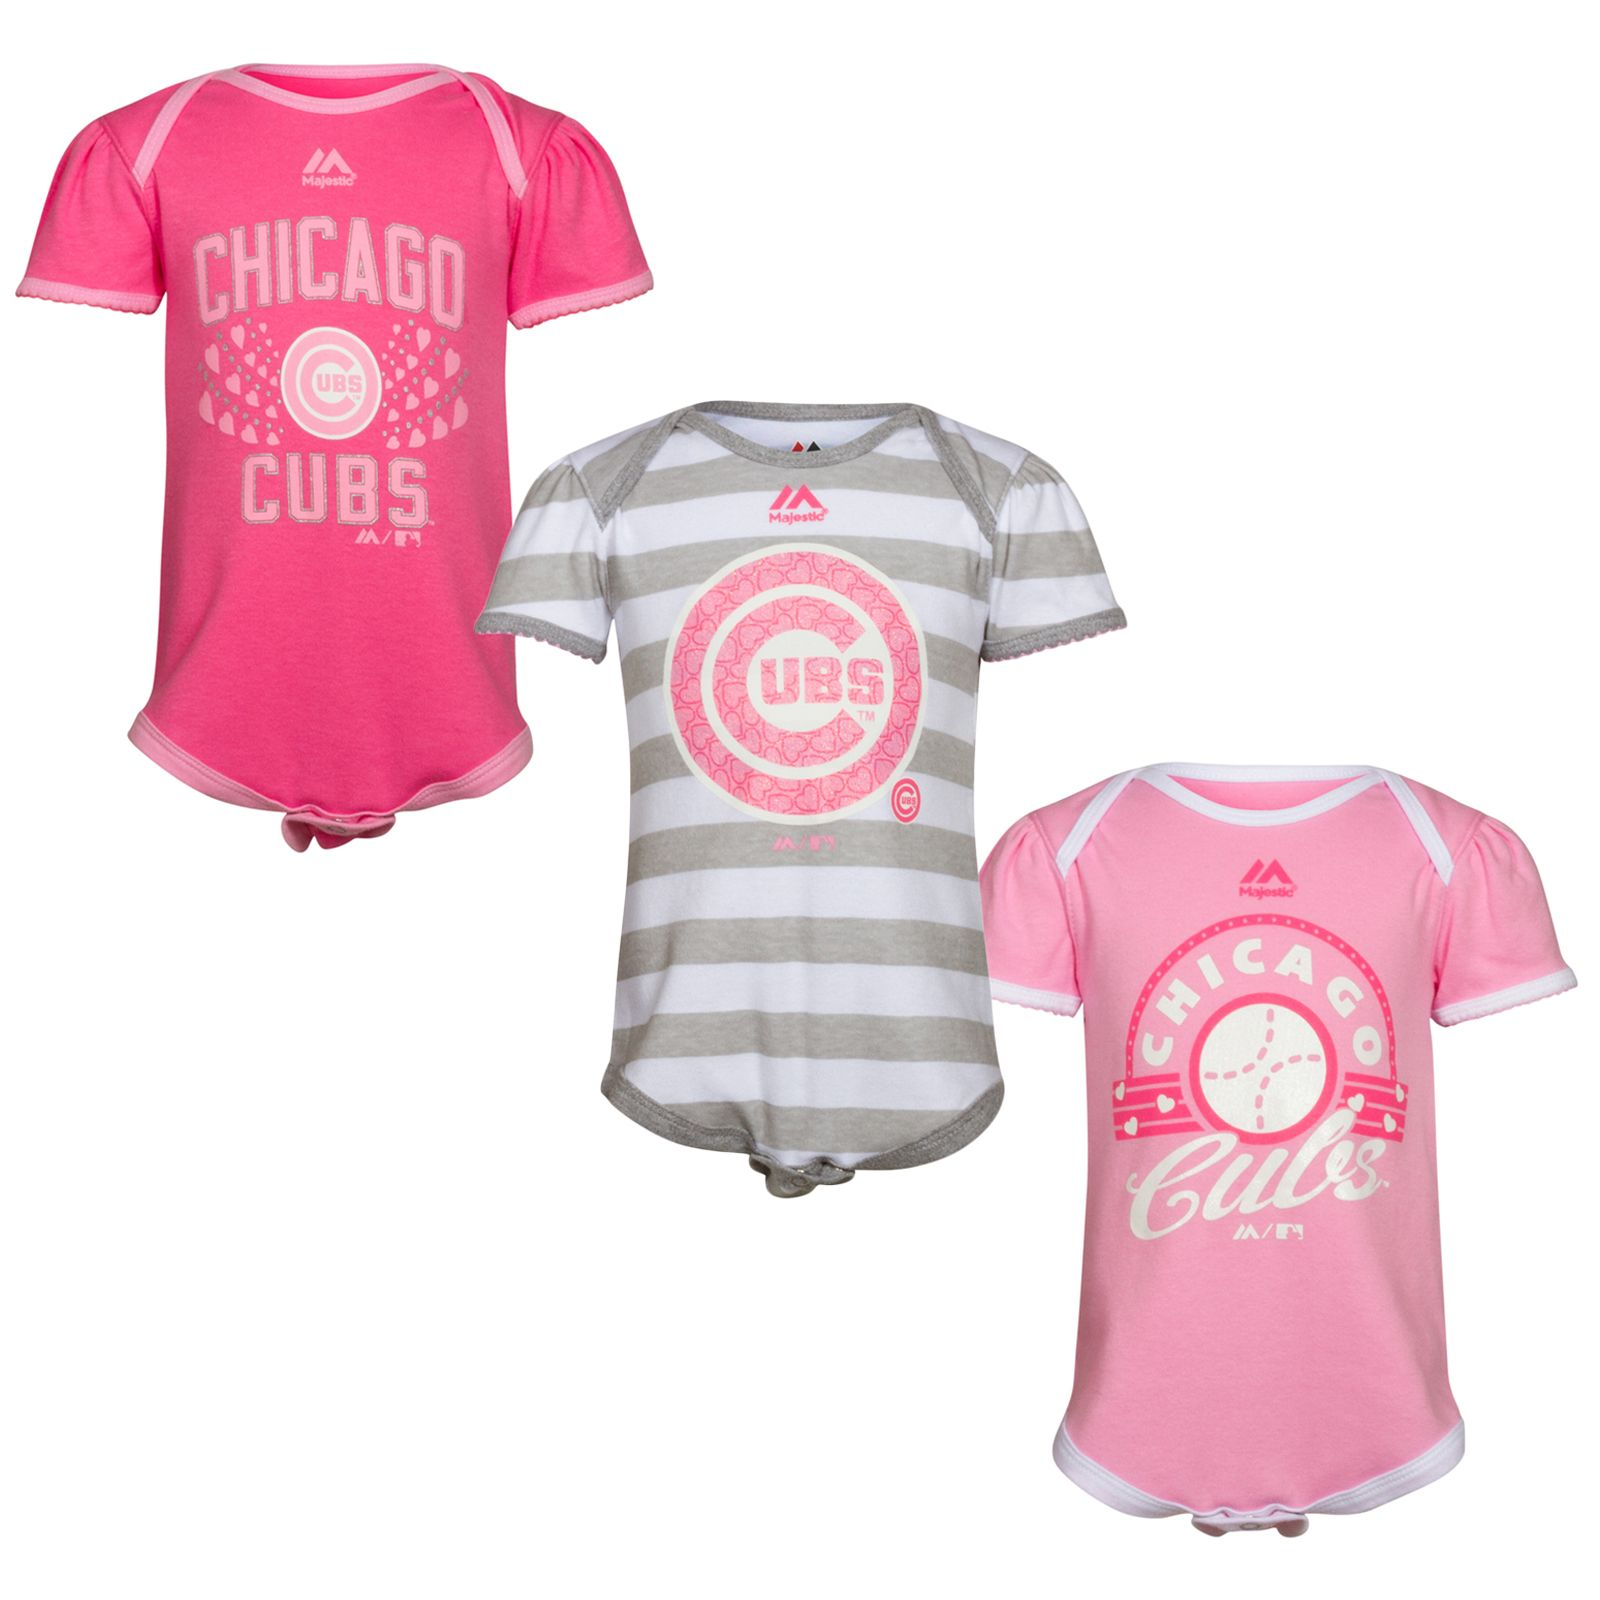 Chicago Cubs Infant Pink esie Three Pack by Outerstuff Chicago